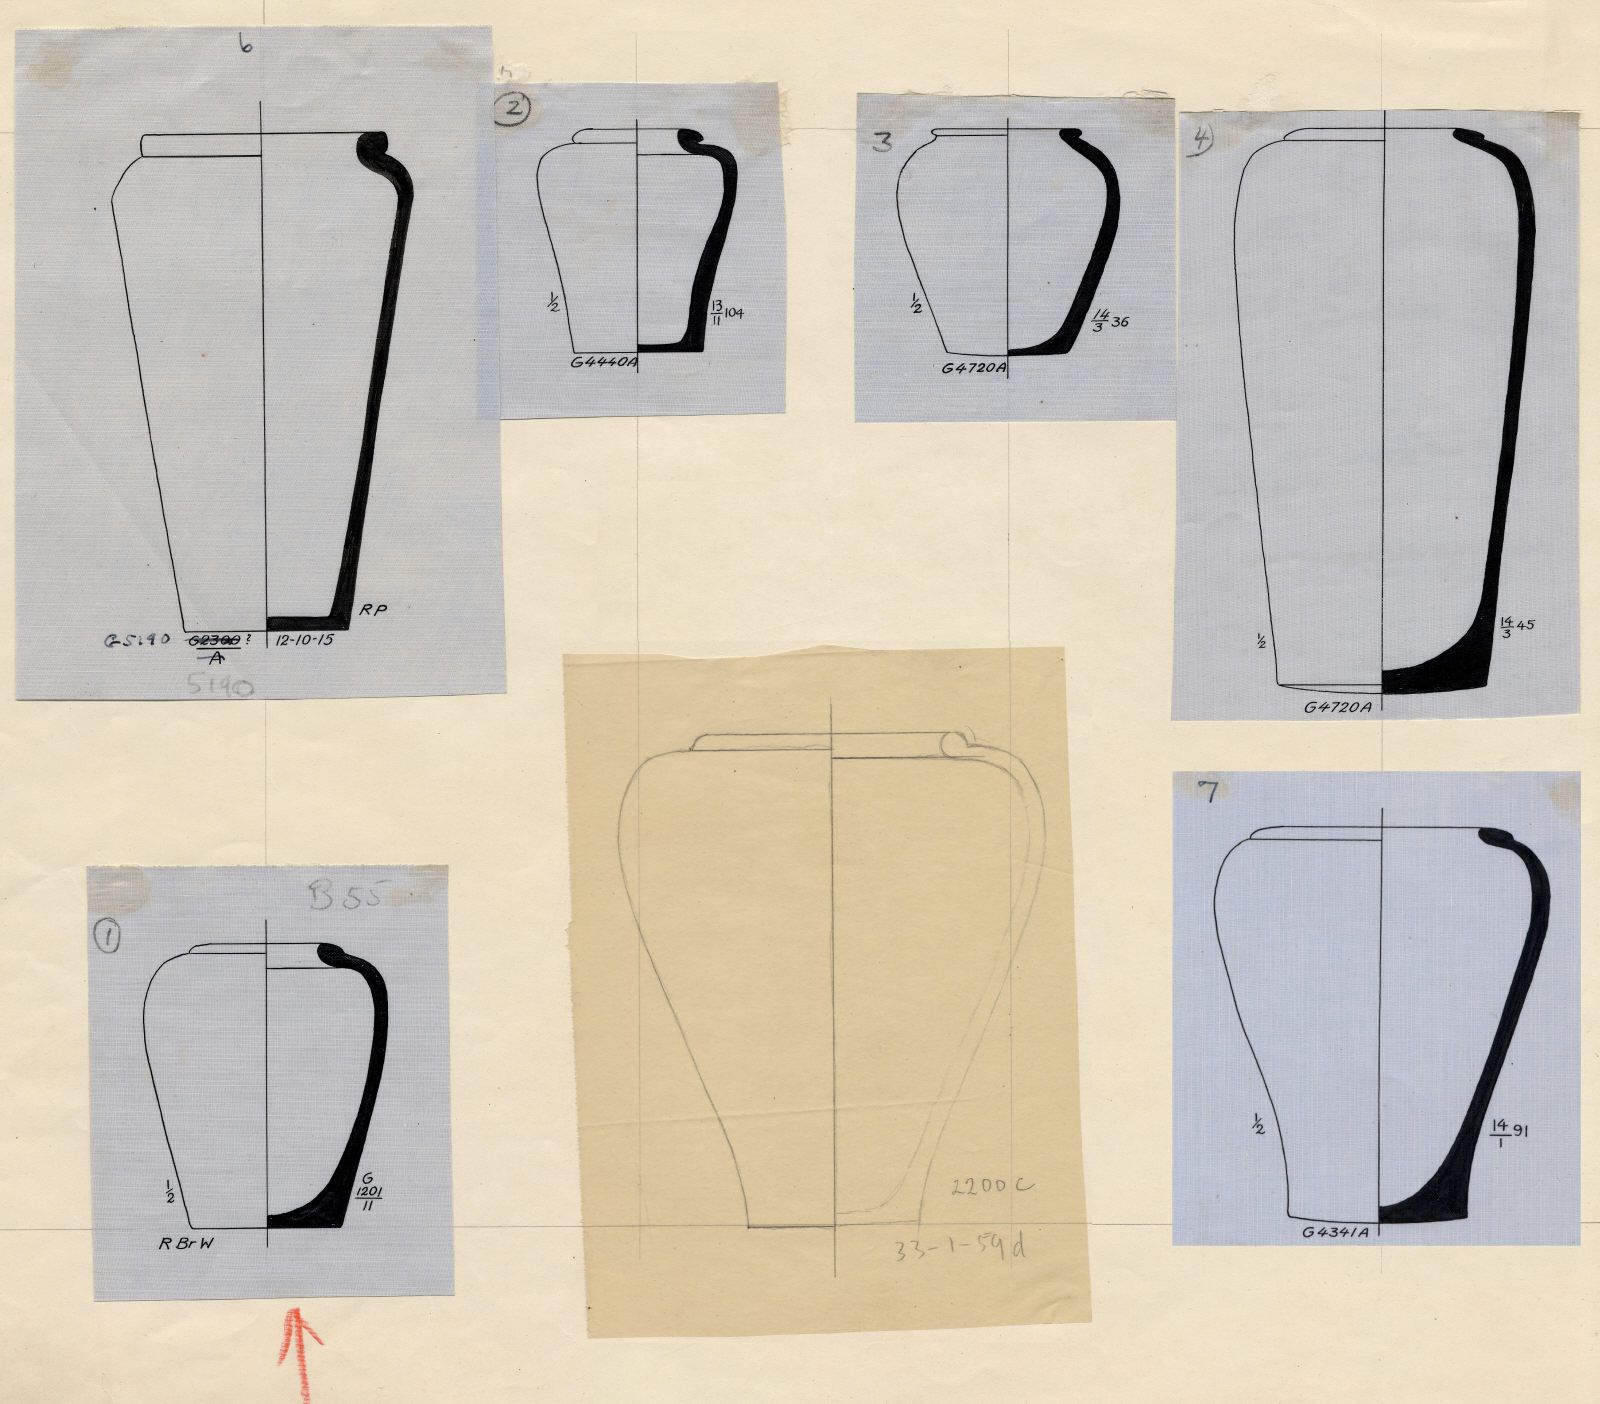 Drawings: Pottery jars from G 1201, G 4341, G 4440, G 4720, G 5080, G 5190